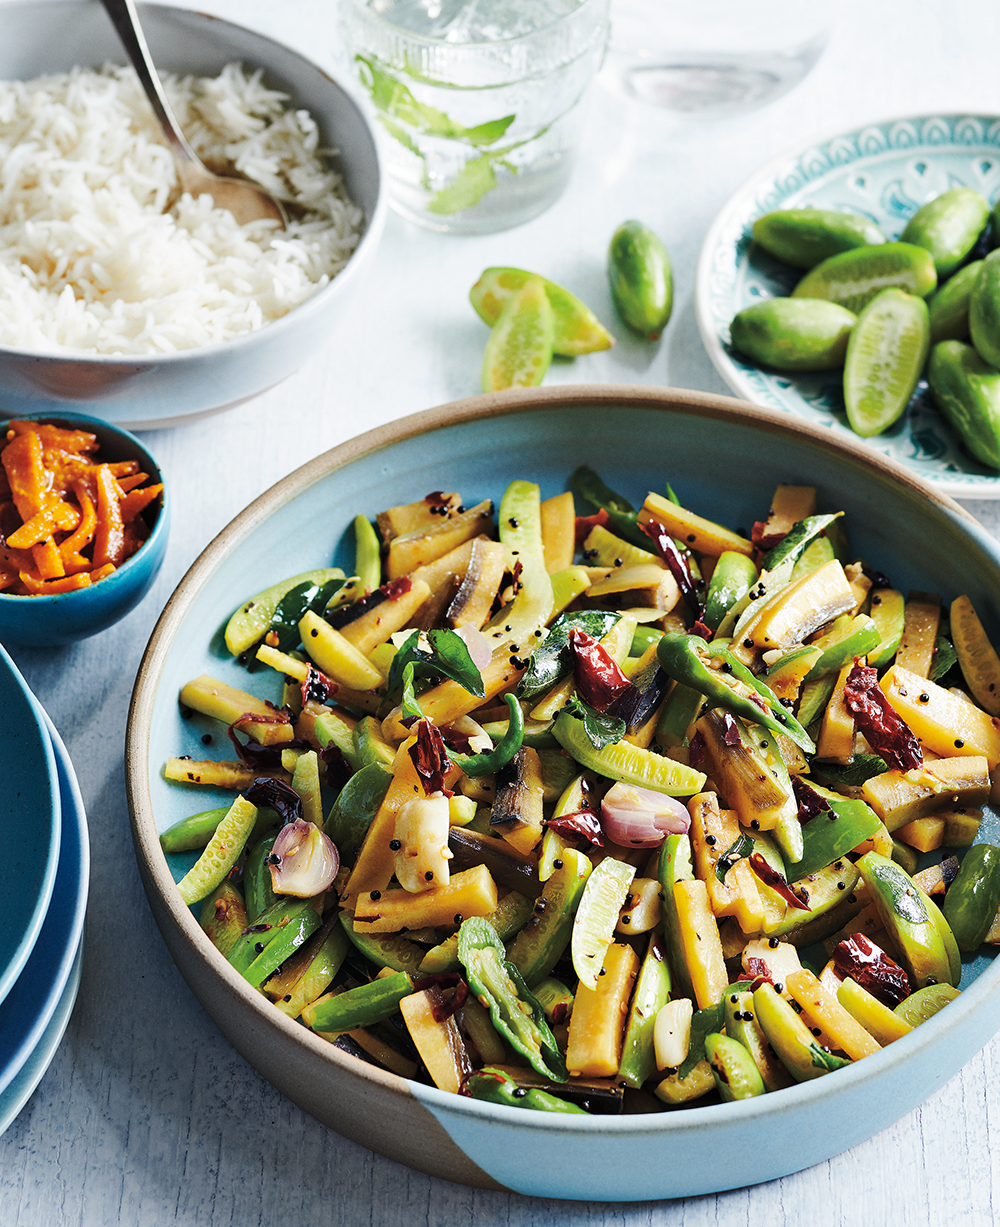 What To Make With All Your Local Zucchini Mezhukkupuratti A Simple South Indian Stir Fry Recipe Vegetarian Menu Plantain Recipes Plant Based Whole Foods